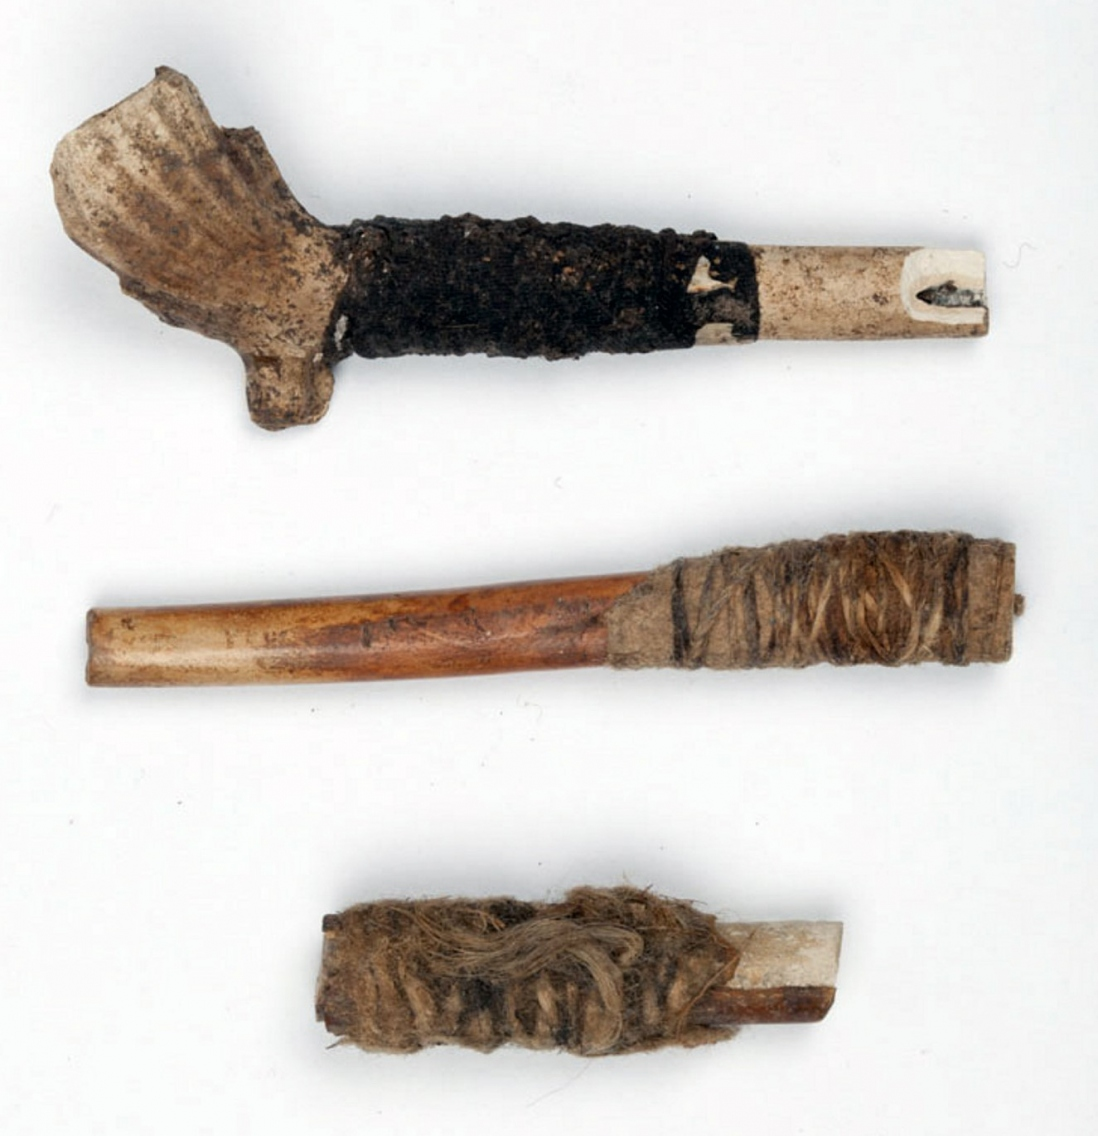 Brown coloured clay pipes, top one complete, bottom two broken stems only, with twine bound around stems..